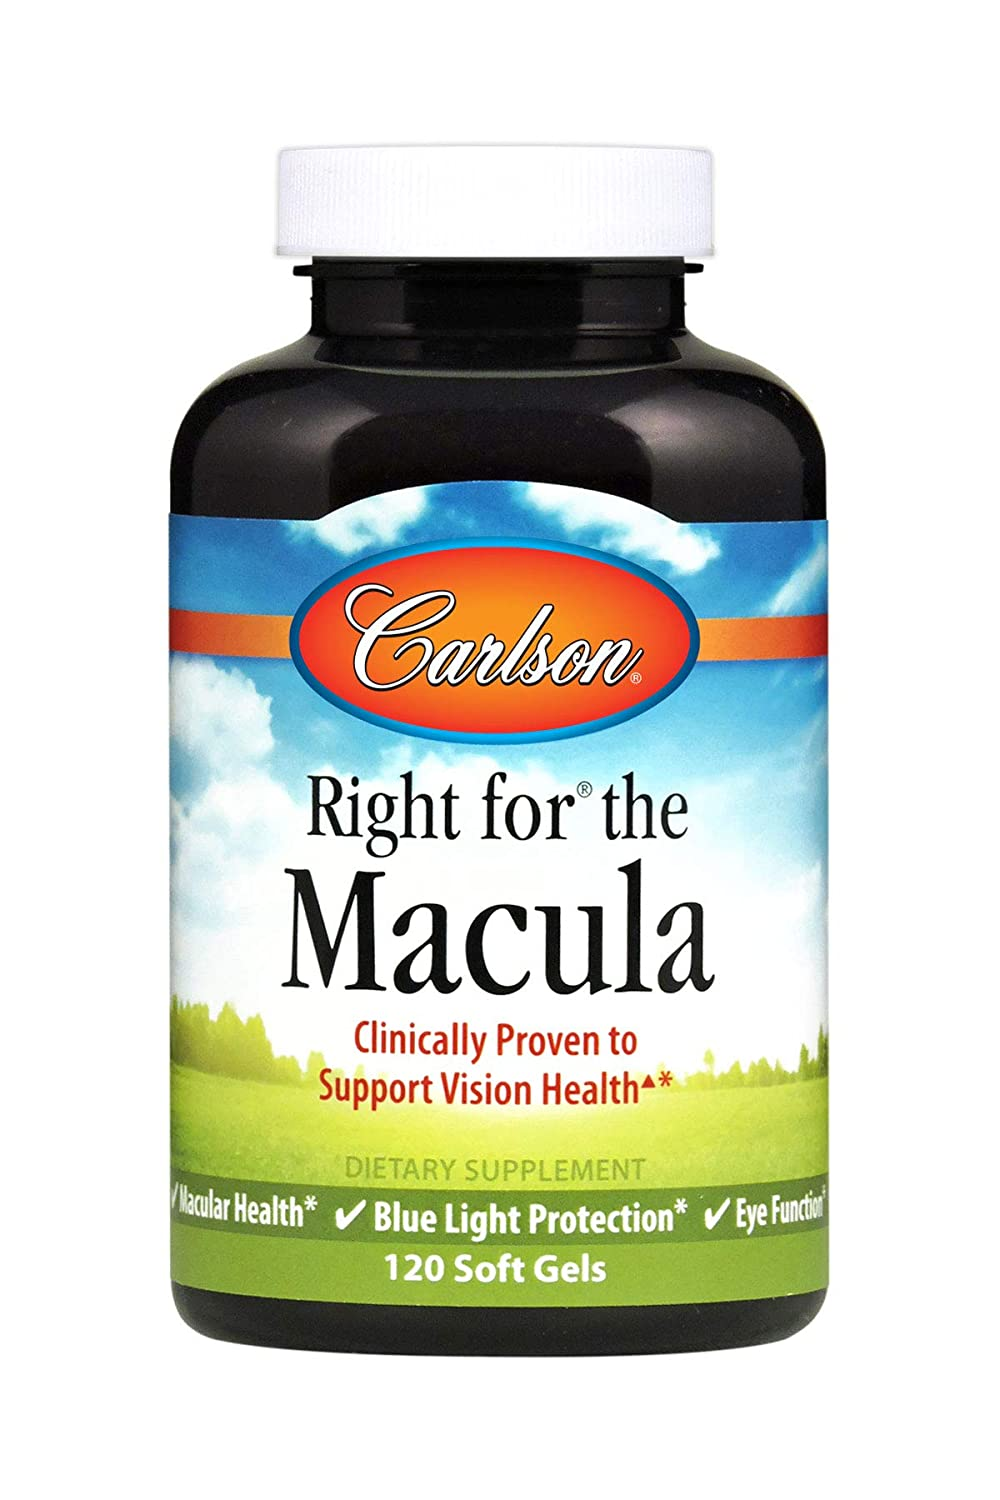 Carlson – Right for Macula, Clinically Proven to Support Vision Health, Macular Health, Blue Light Protection Eye Function, 120 soft gels